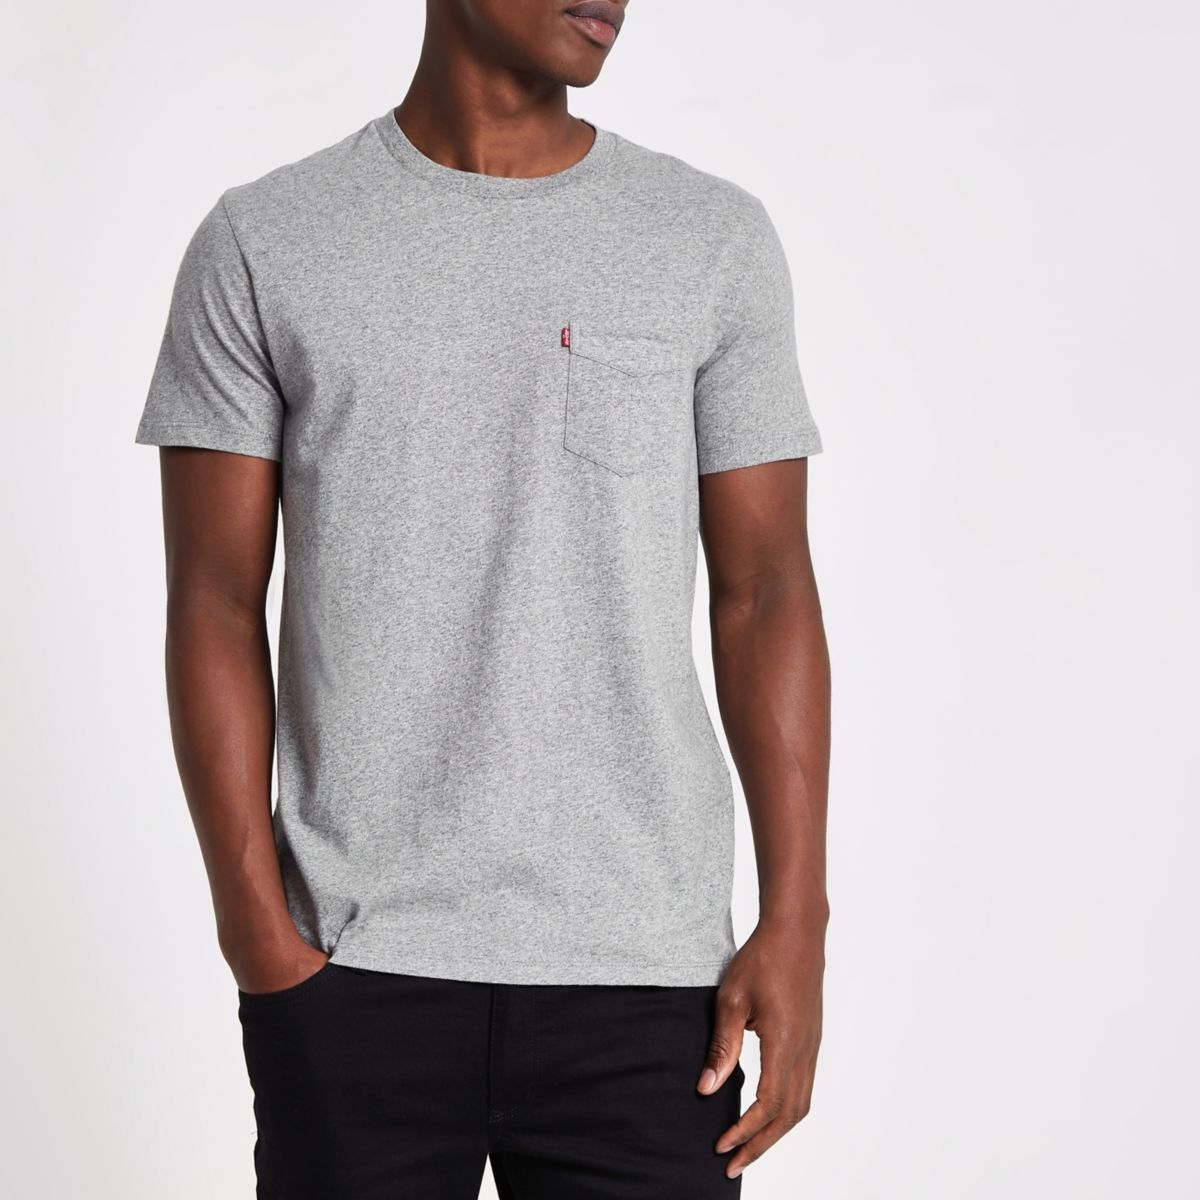 Grey Levi's short sleeve T-shirt